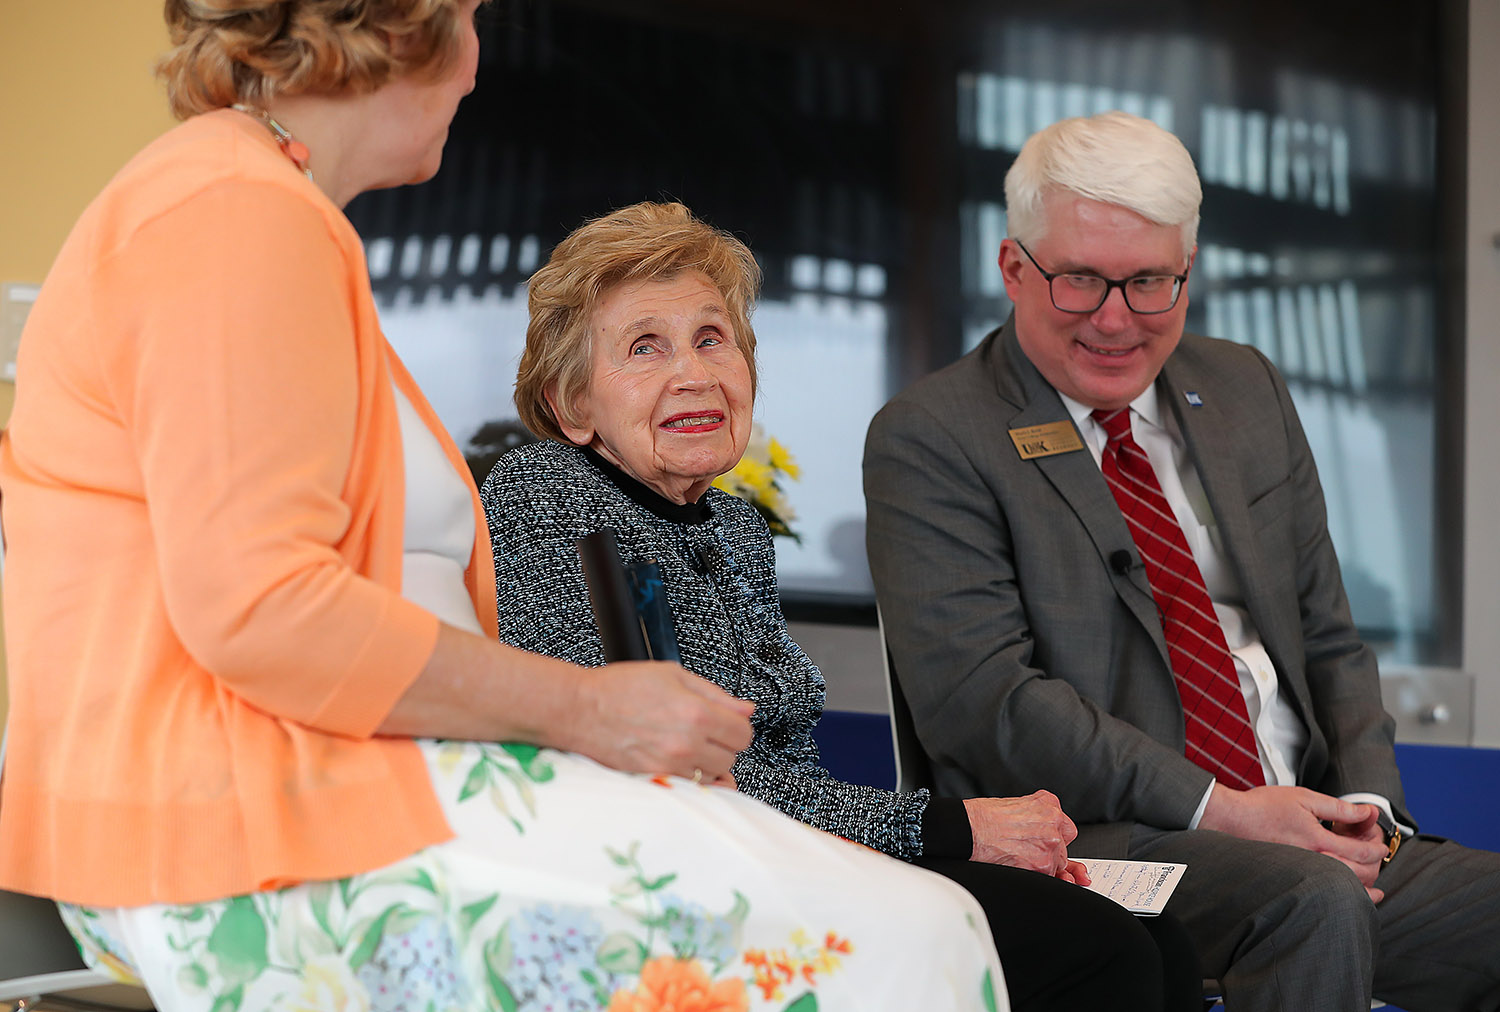 LaVonne Kopecky Plambeck, center, is pictured with fellow Early Childhood Pioneer Award recipient Roxanne Vipond and UNK College of Education Dean Mark Reid during Thursday evening's ceremony at the Plambeck Early Childhood Education Center.